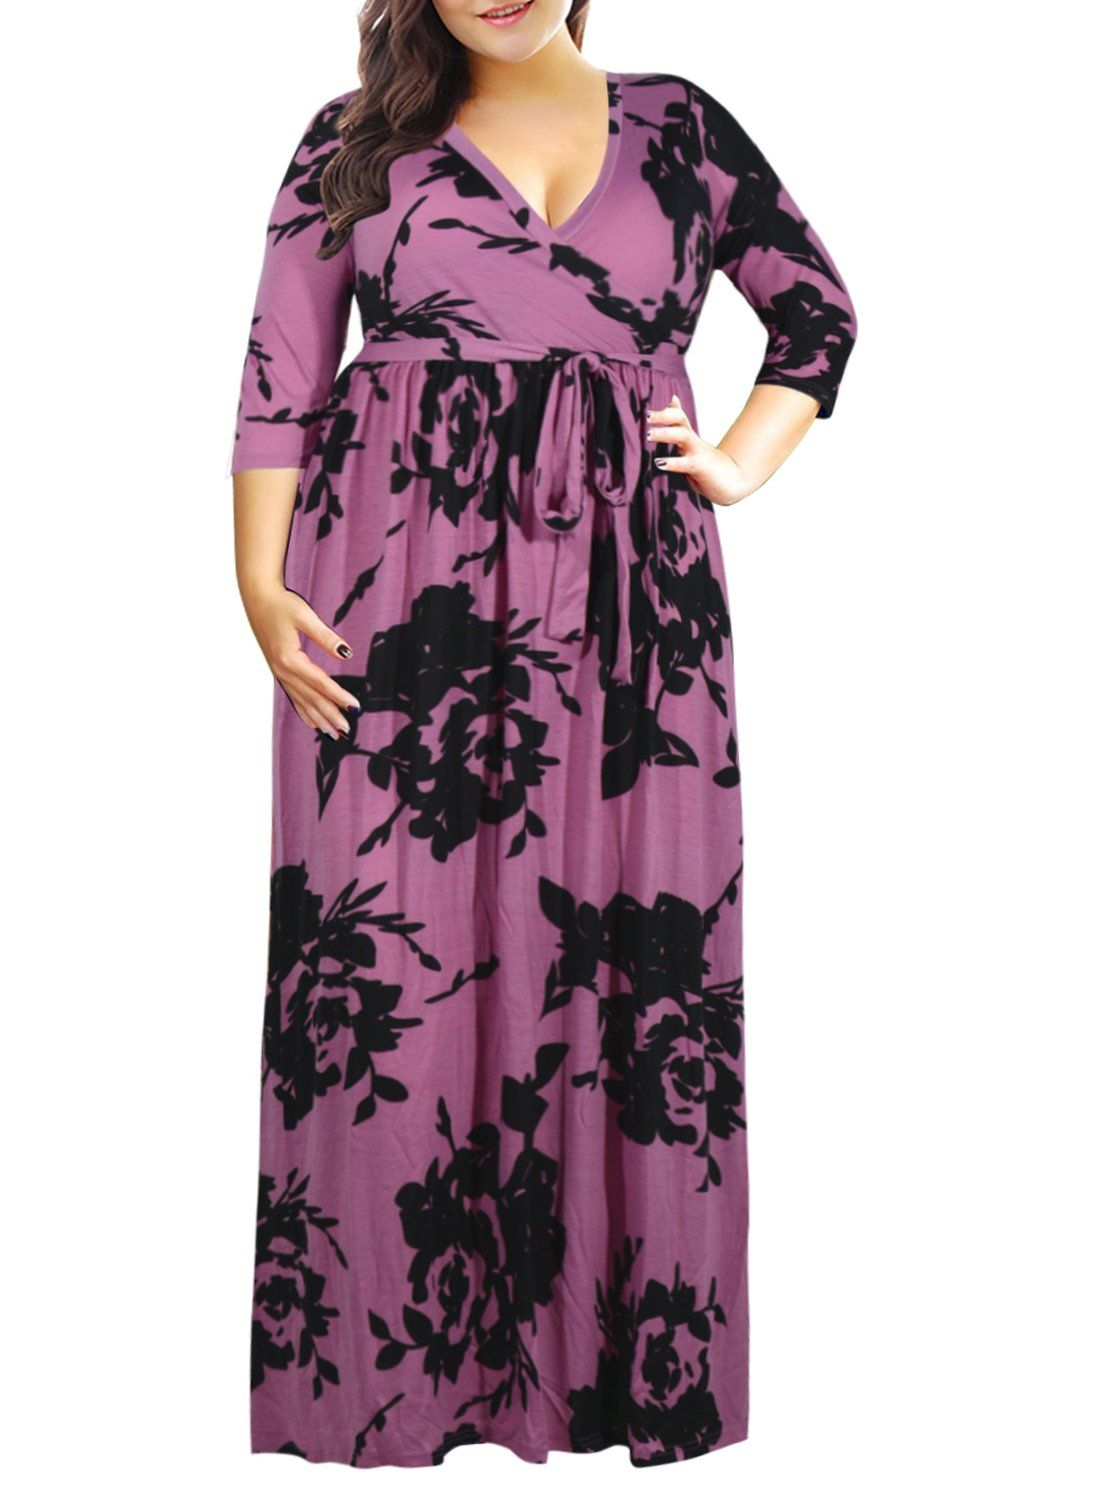 f53f8b45f5fd1 Maternity Fashion - best maternity dresses : Nemidor Womens 3/4 Sleeve Floral  Print Plus Size Casual Party Maxi Dress PurplePrint 16W ** Check out the  image ...